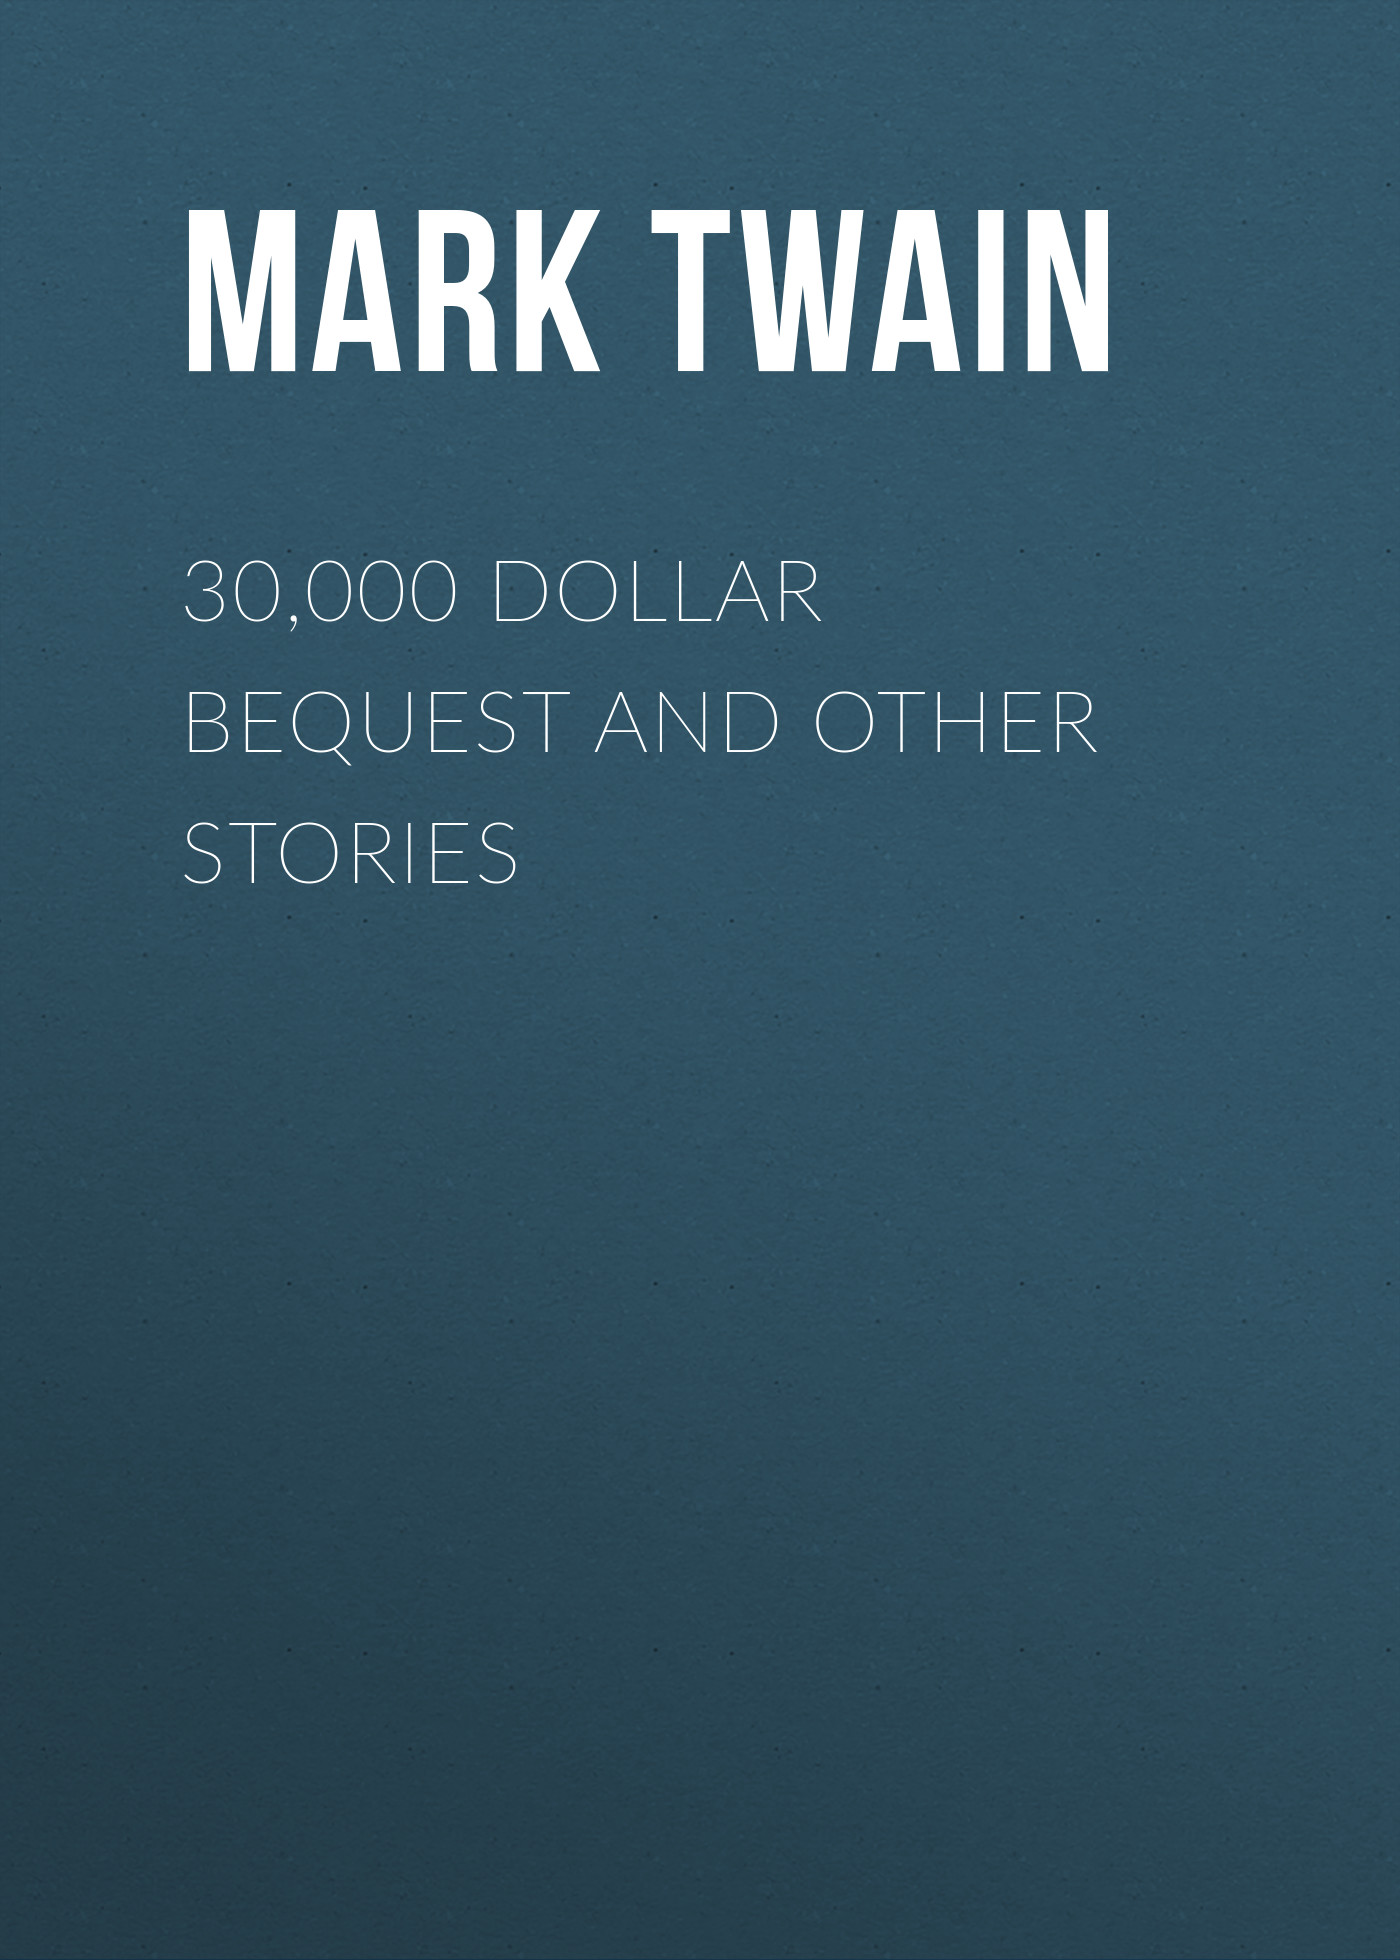 Марк Твен 30,000 Dollar Bequest and Other Stories марк твен 30 000 dollar bequest and other stories